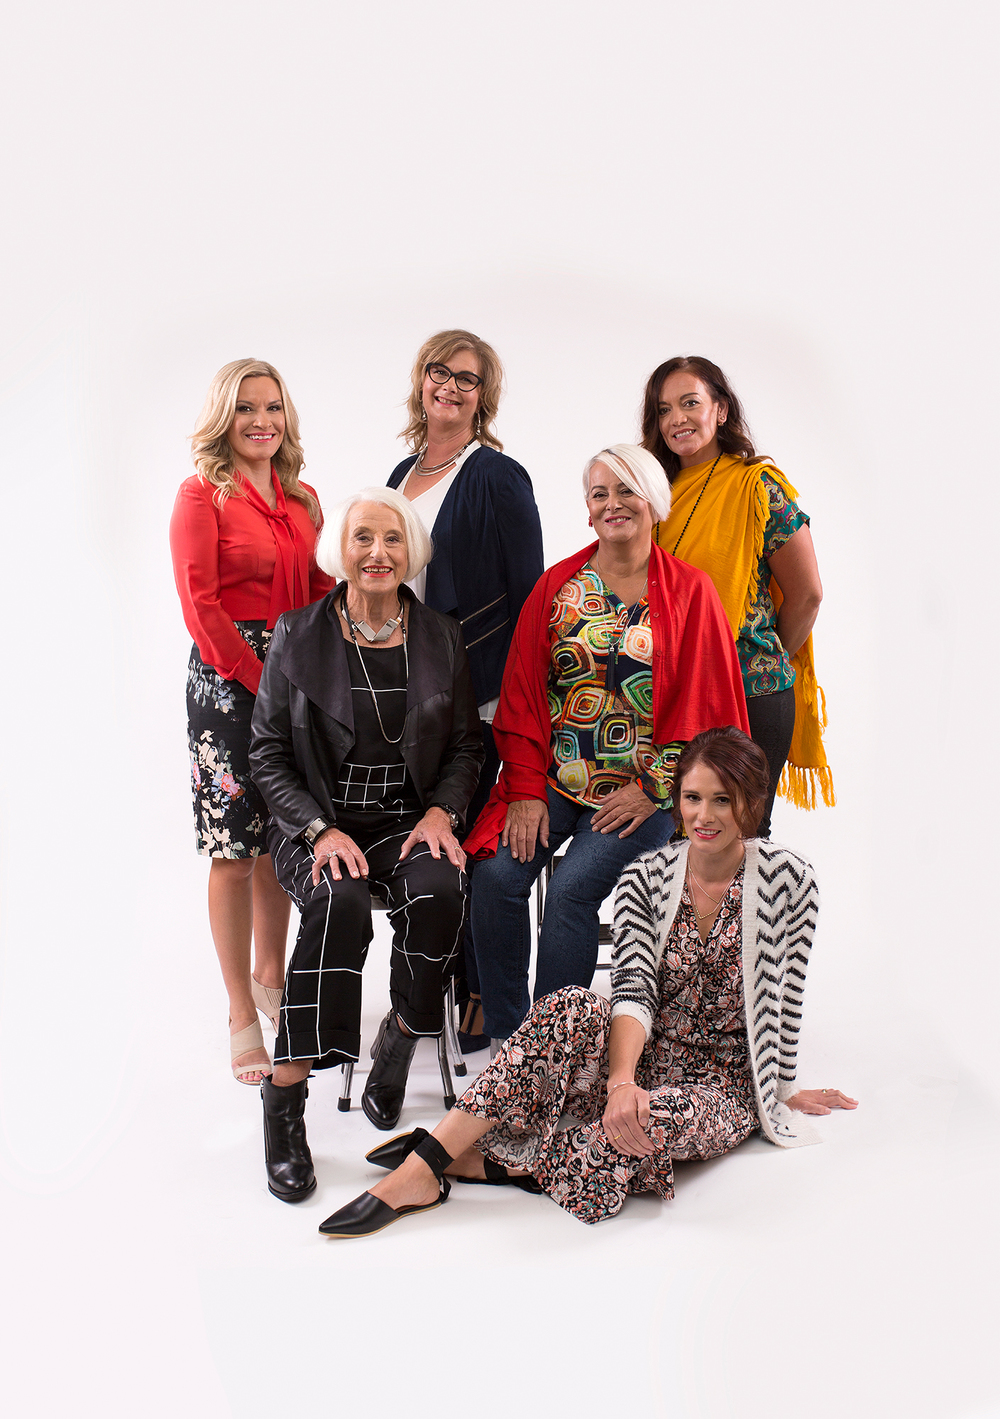 Happy Mothers Day from Aimee, Sharron, Cheryl, Helen, Chrissy and Frankie! our beautiful models for May Admire Fashion Spread.